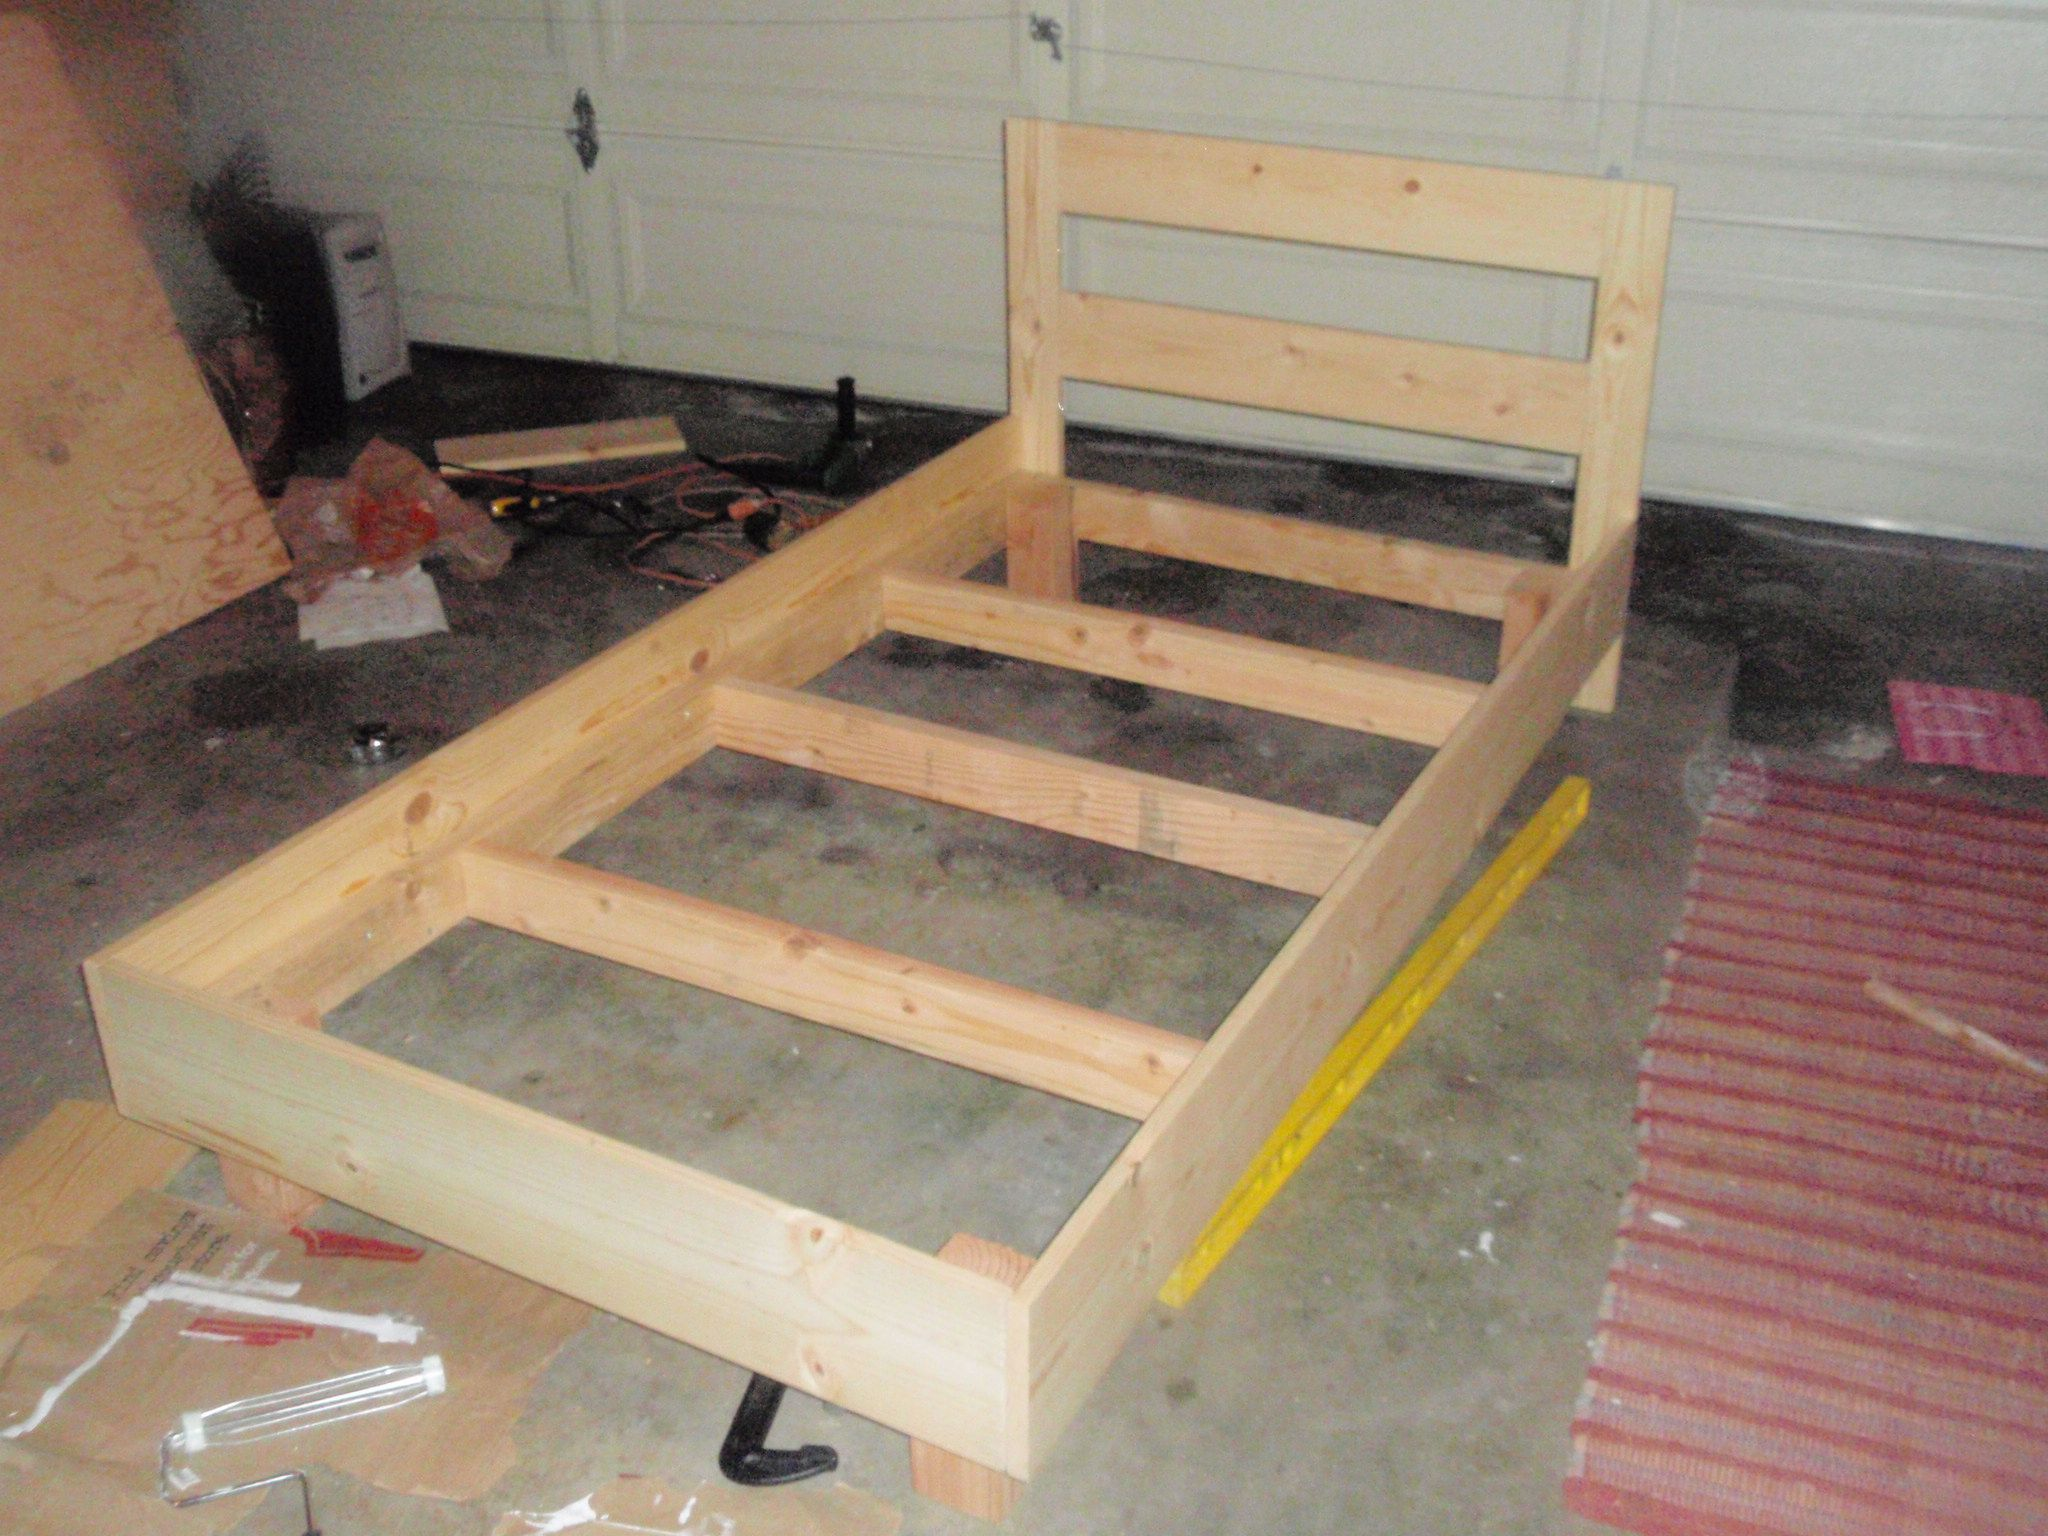 Diy wood bed frame plans - How To Build A Twin Bed Frame Beds Designs